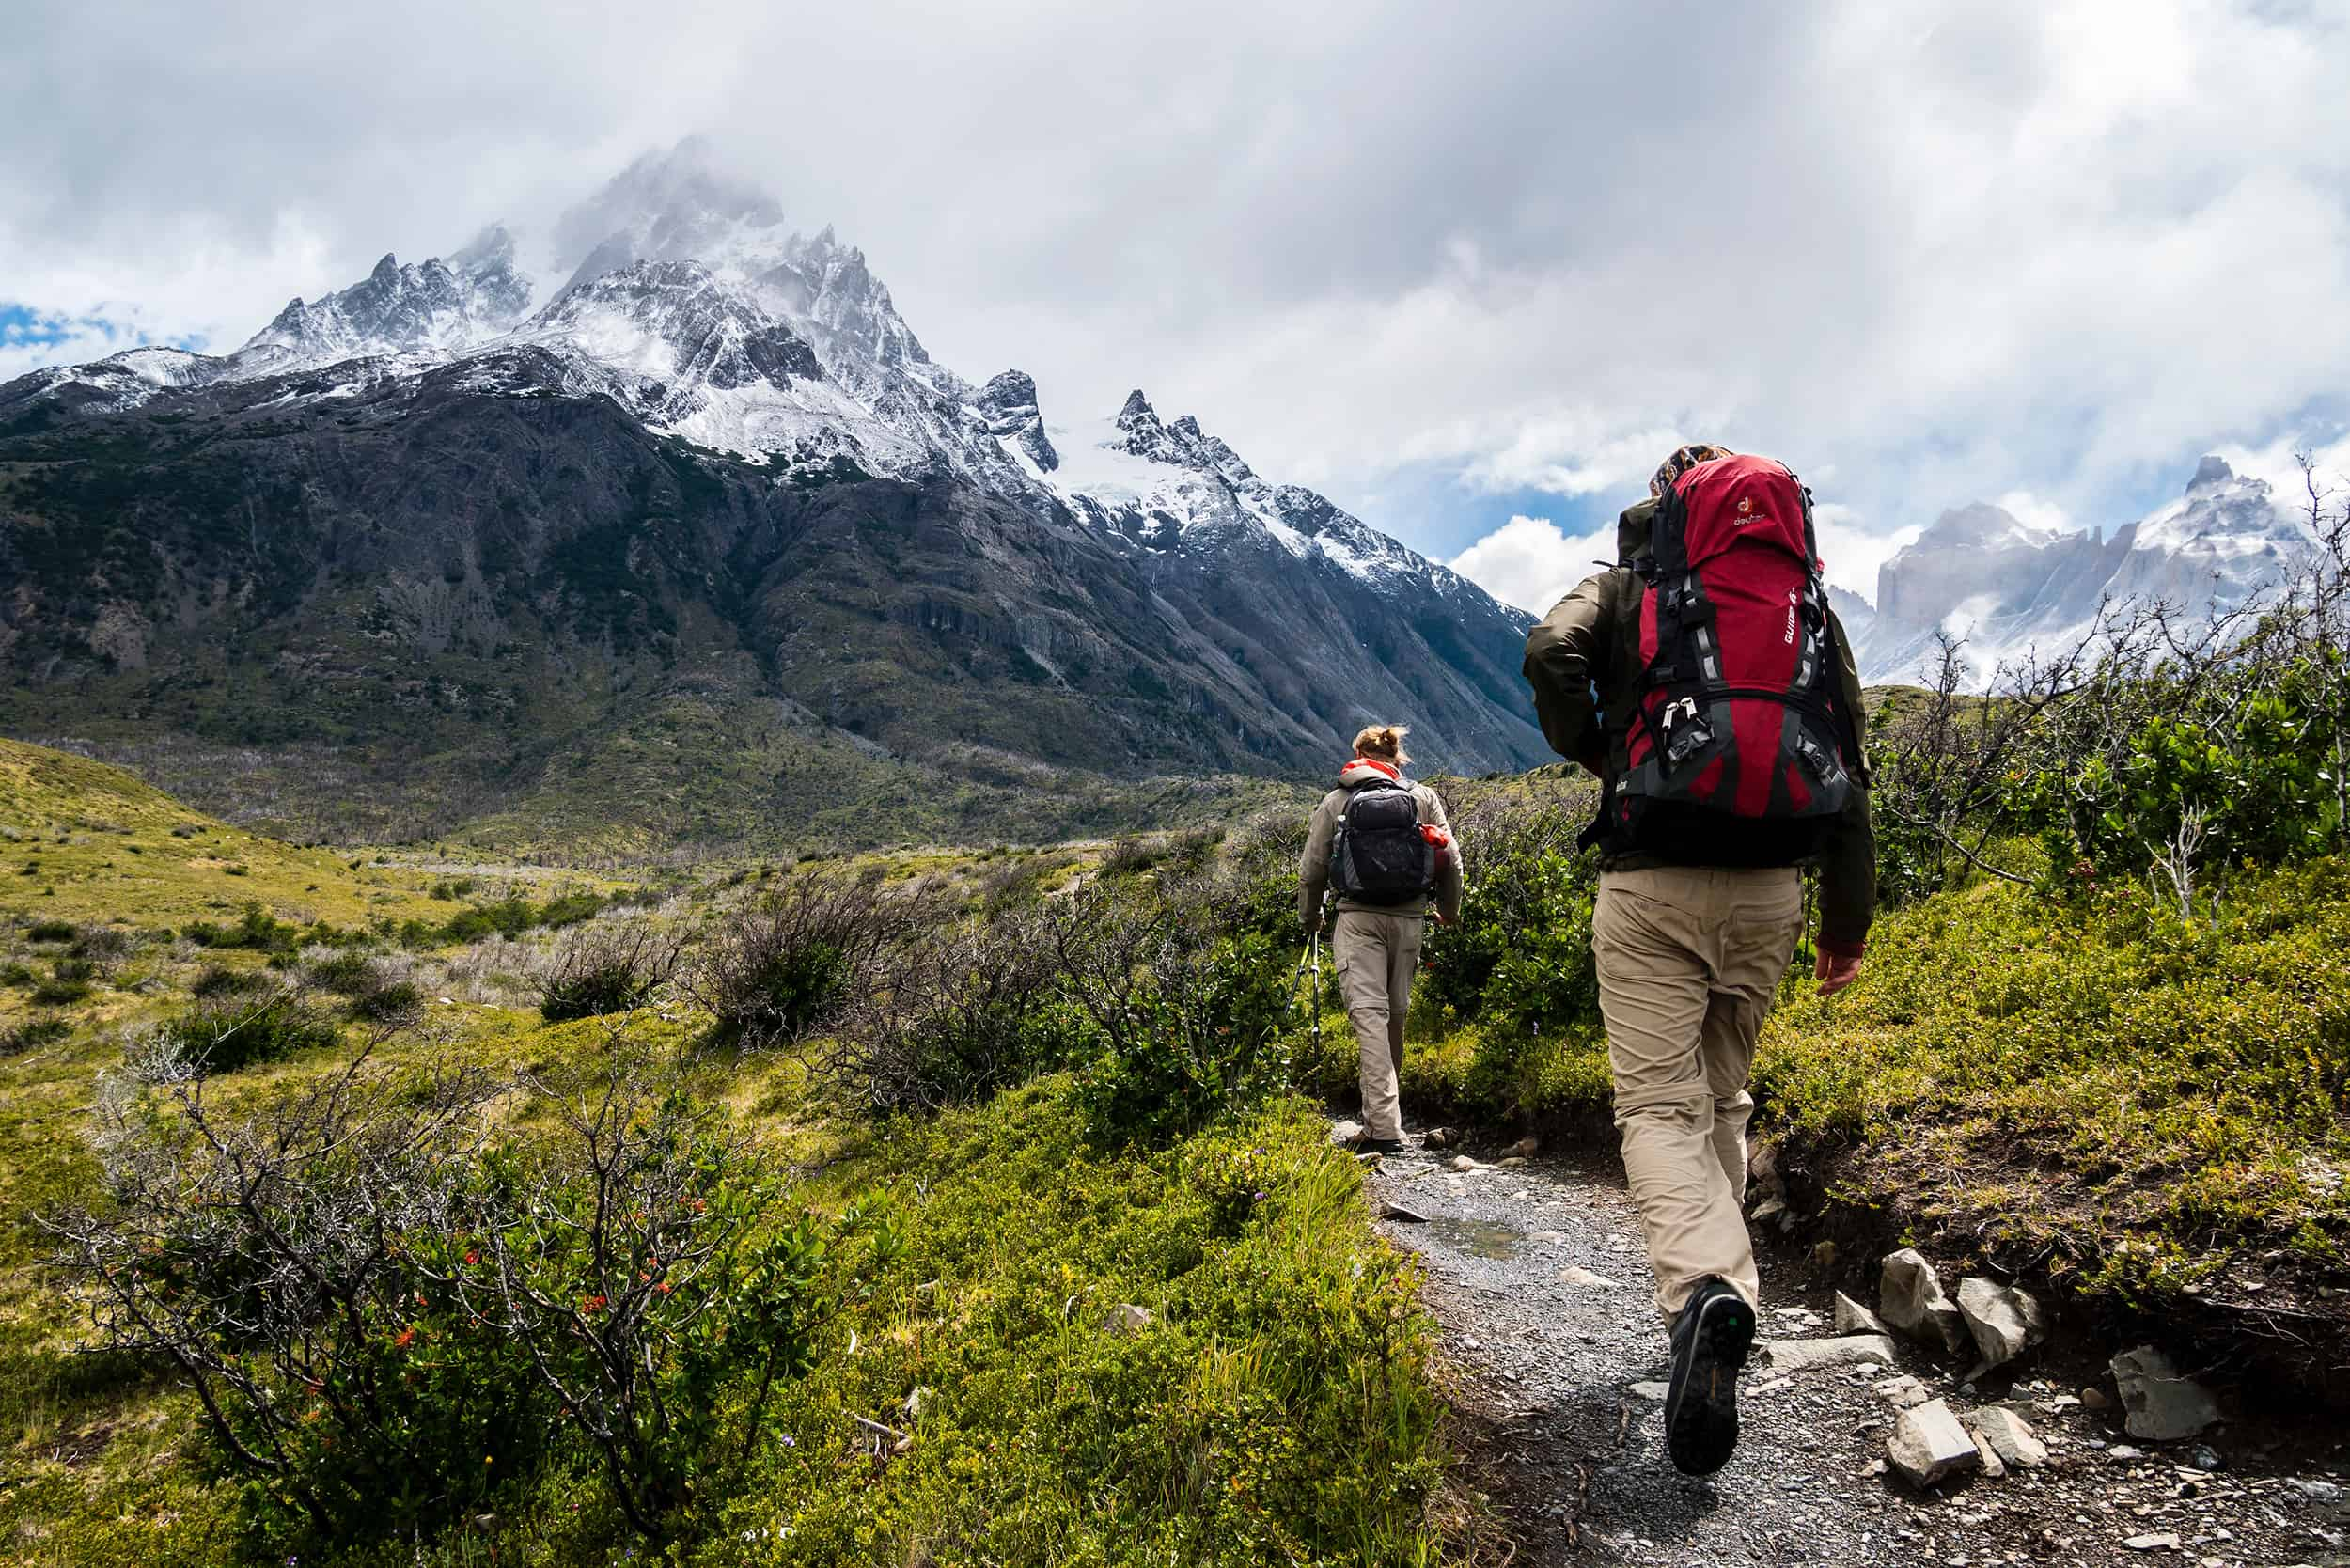 Hiking Gear that you probably haven't even heard of